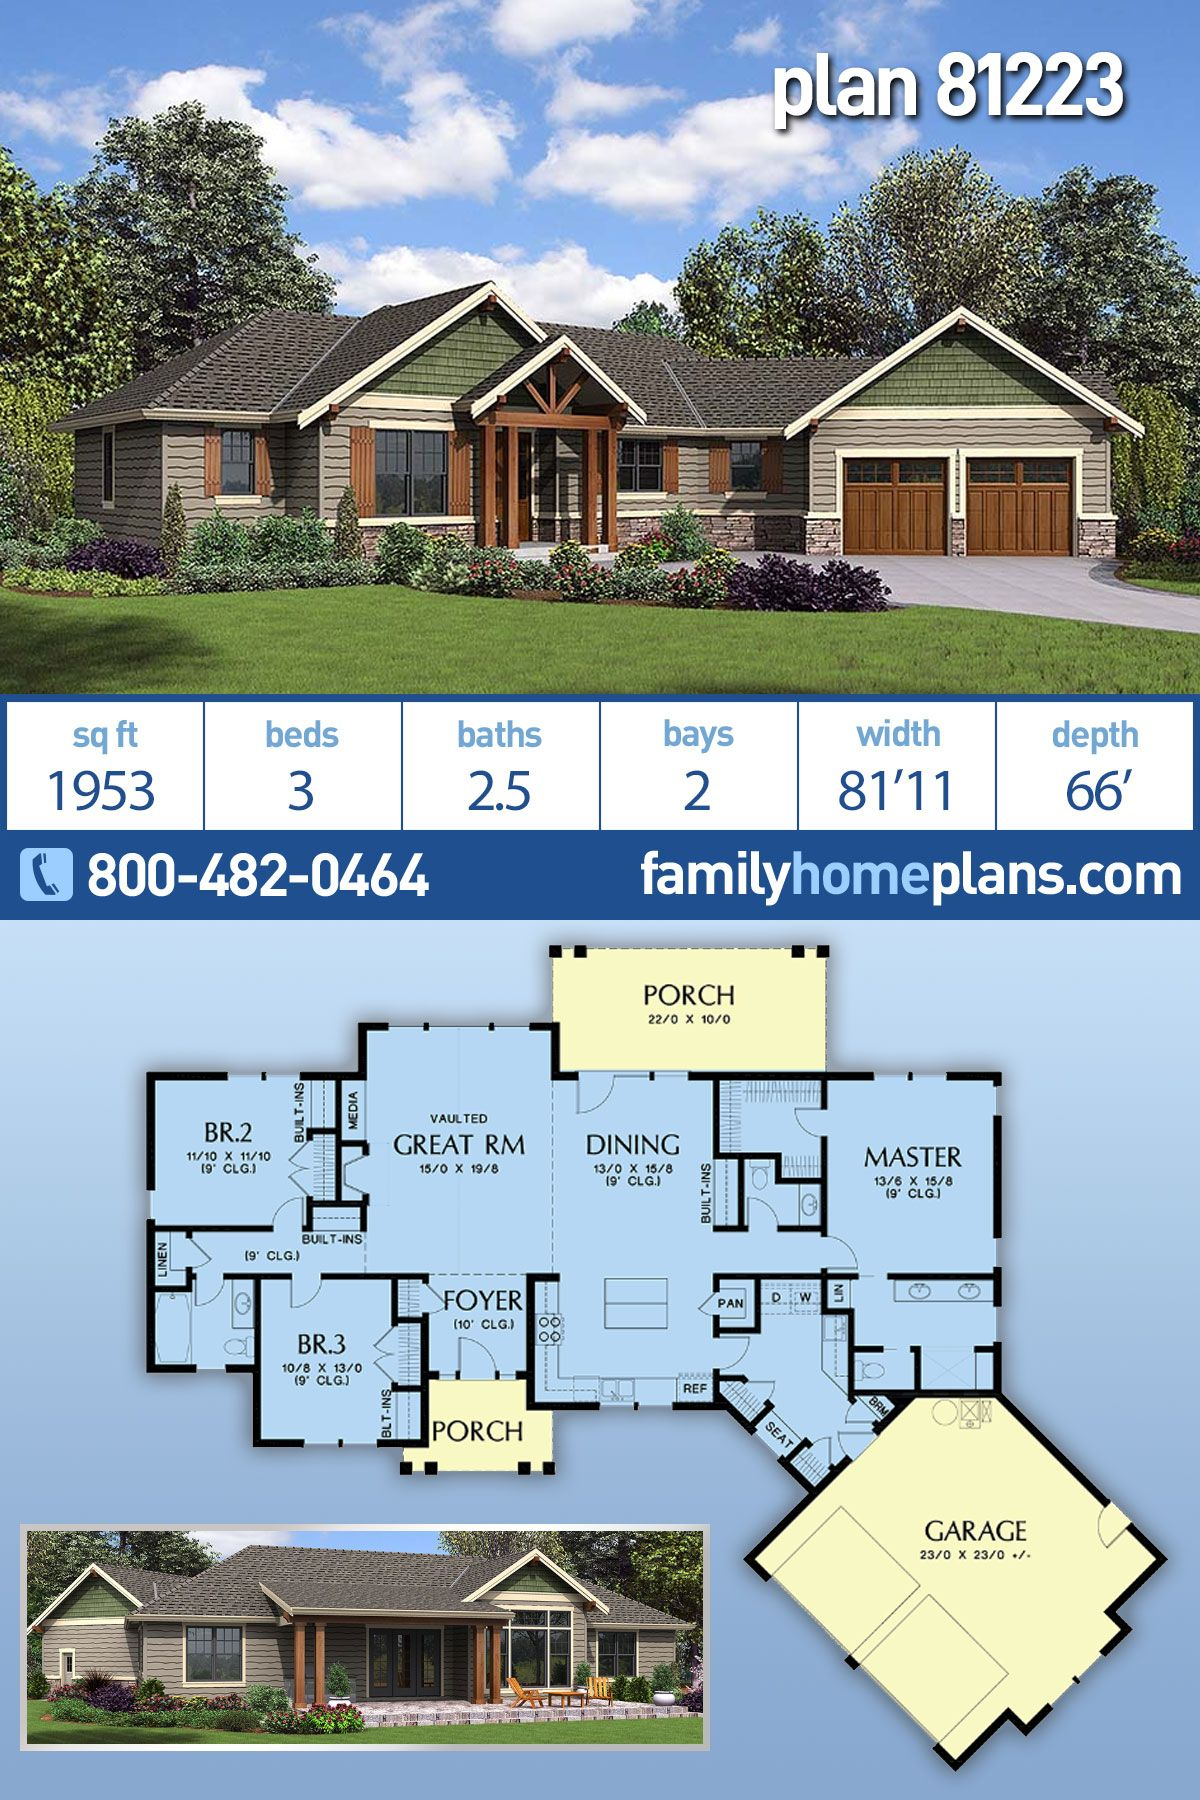 House Plan 81223 Craftsman Ranch Style House Plan With 1953 Sq Ft 3 Bed 3 Bath 2 Car Ranch House Floor Plans Family House Plans Ranch Style House Plans